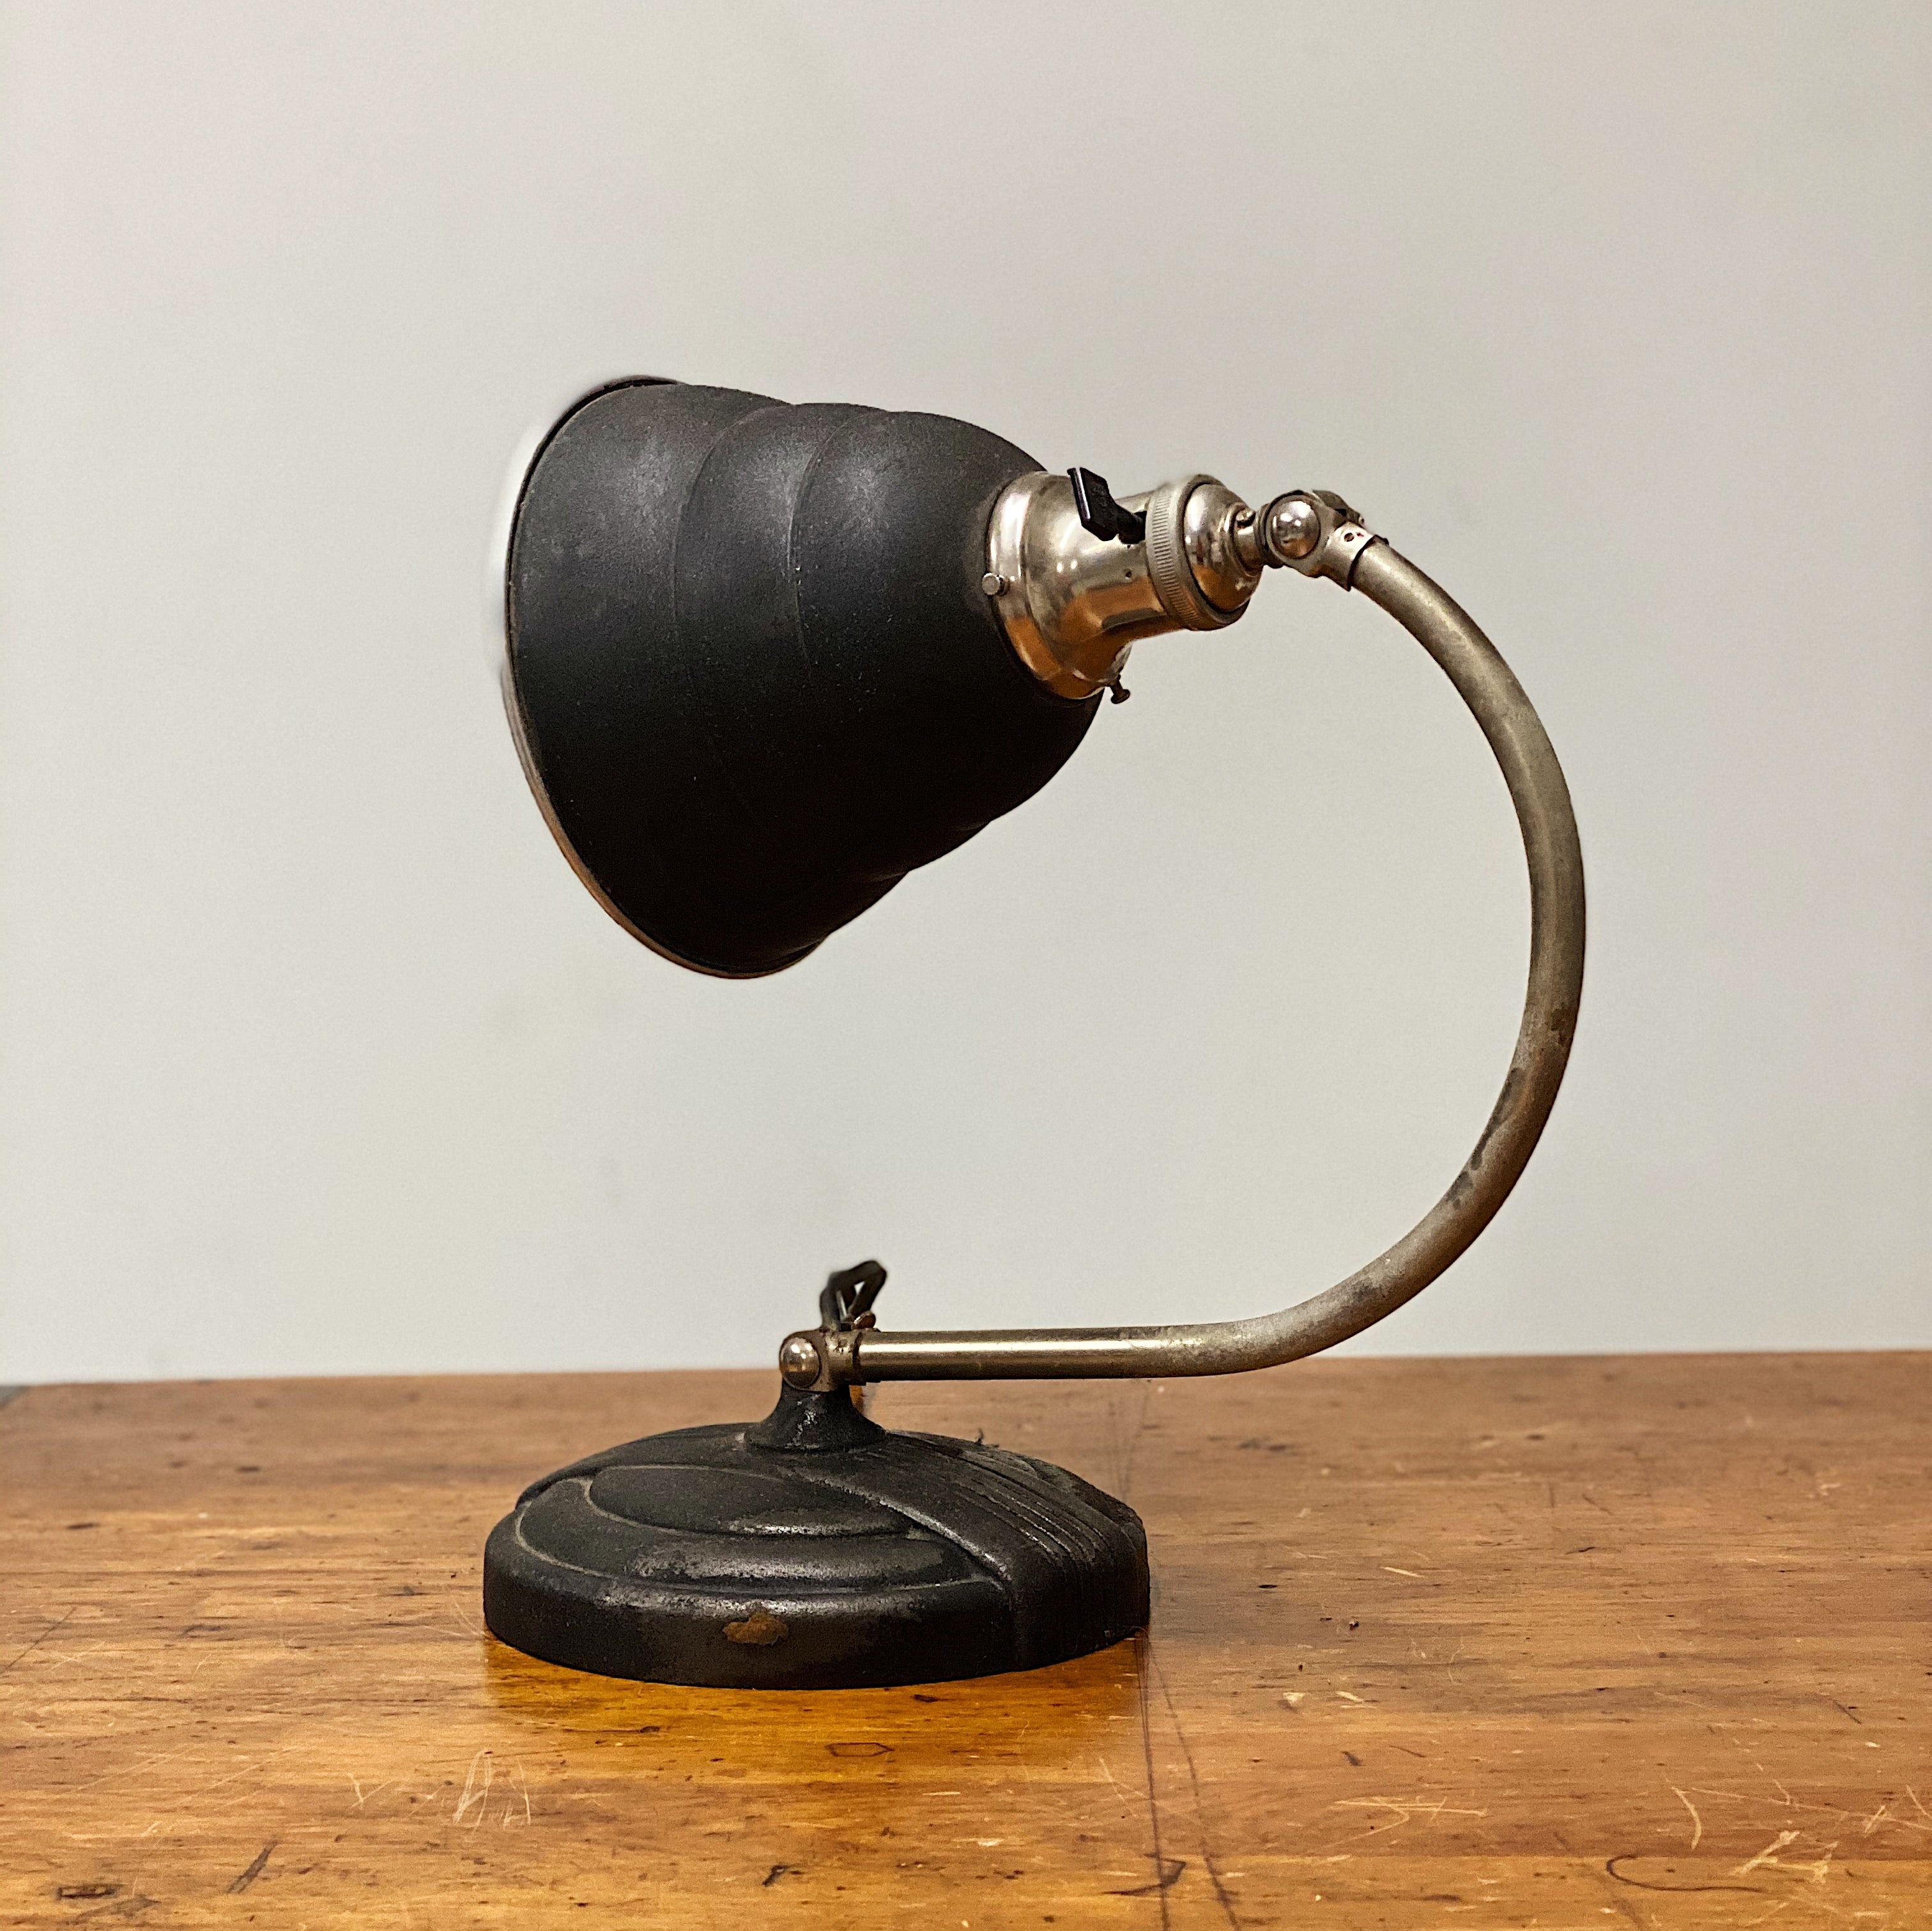 Funky Vintage Articulating Desk Lamp with Unusual Shade - General Electric - Rare Art Deco Light - Decor - Black and Tan - Antique Lighting